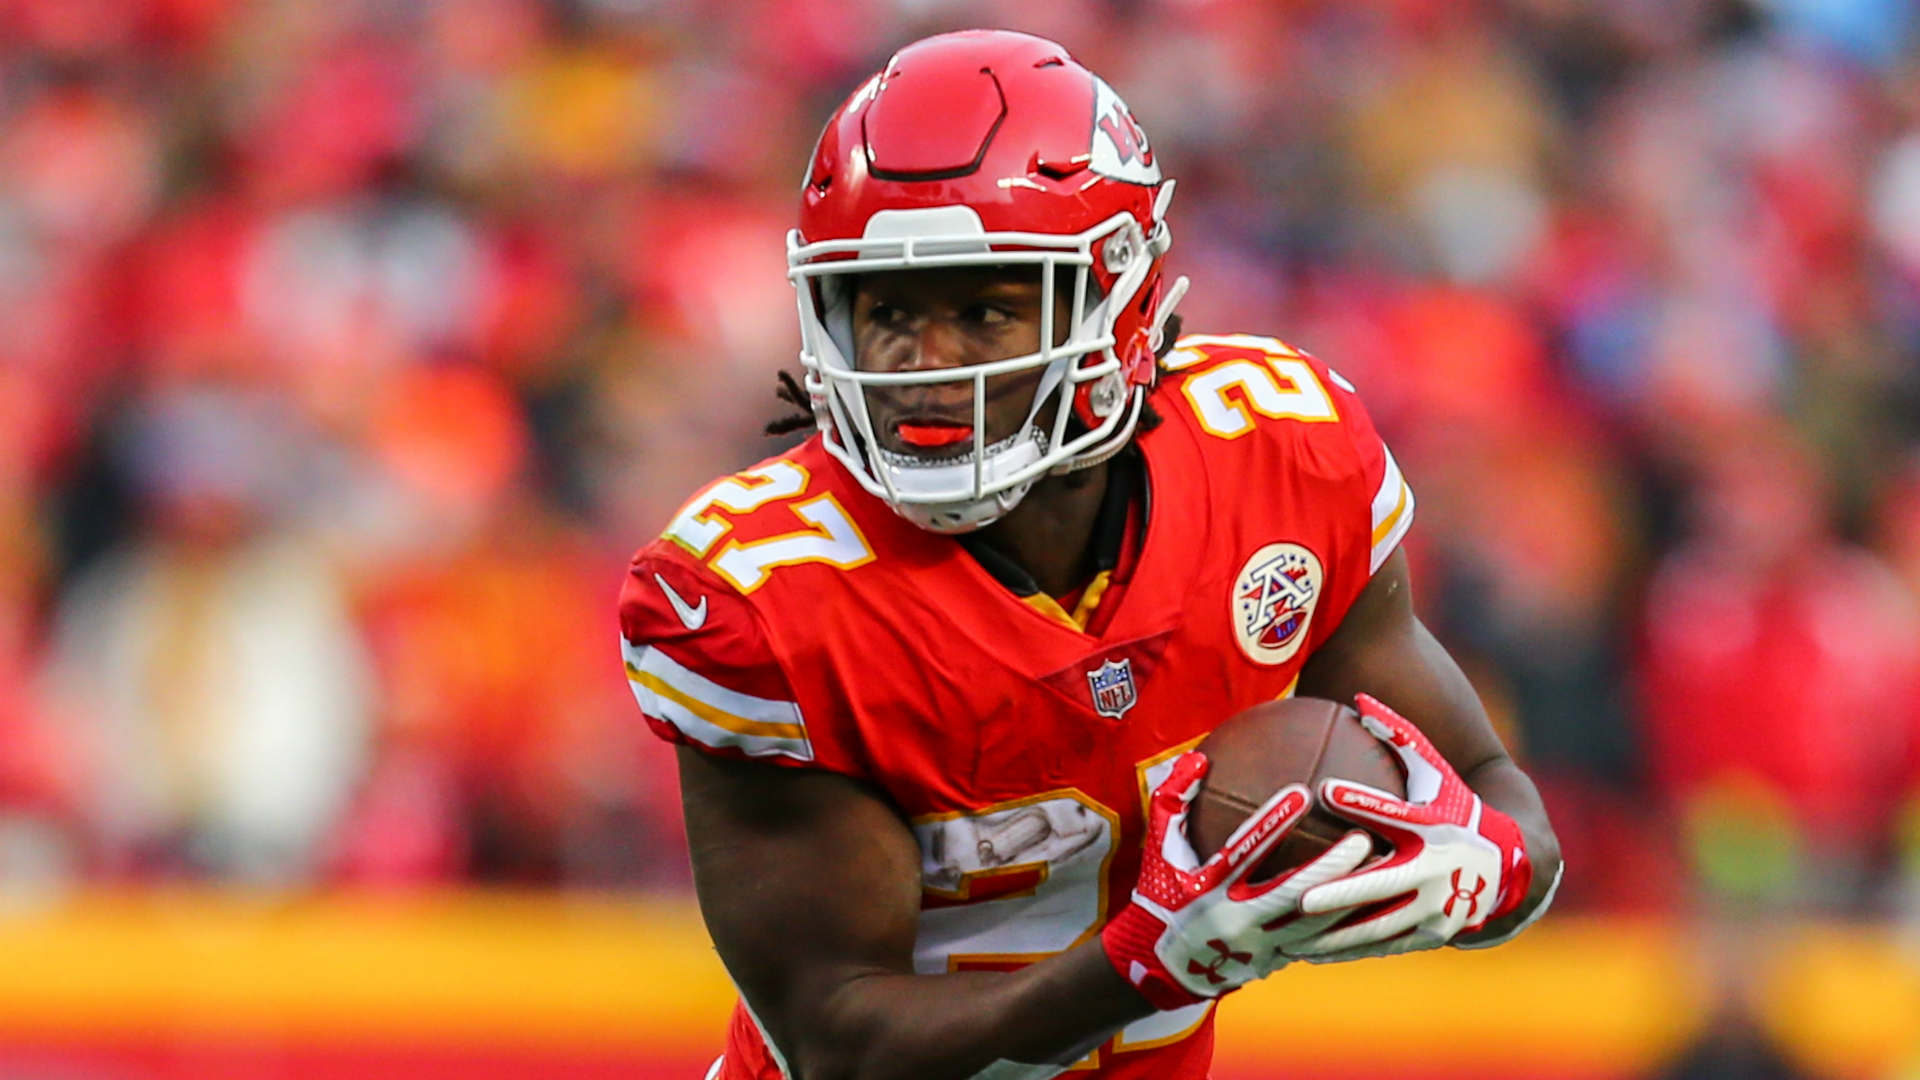 Chiefs' Kareem Hunt allegedly punched man at Ohio resort, report says